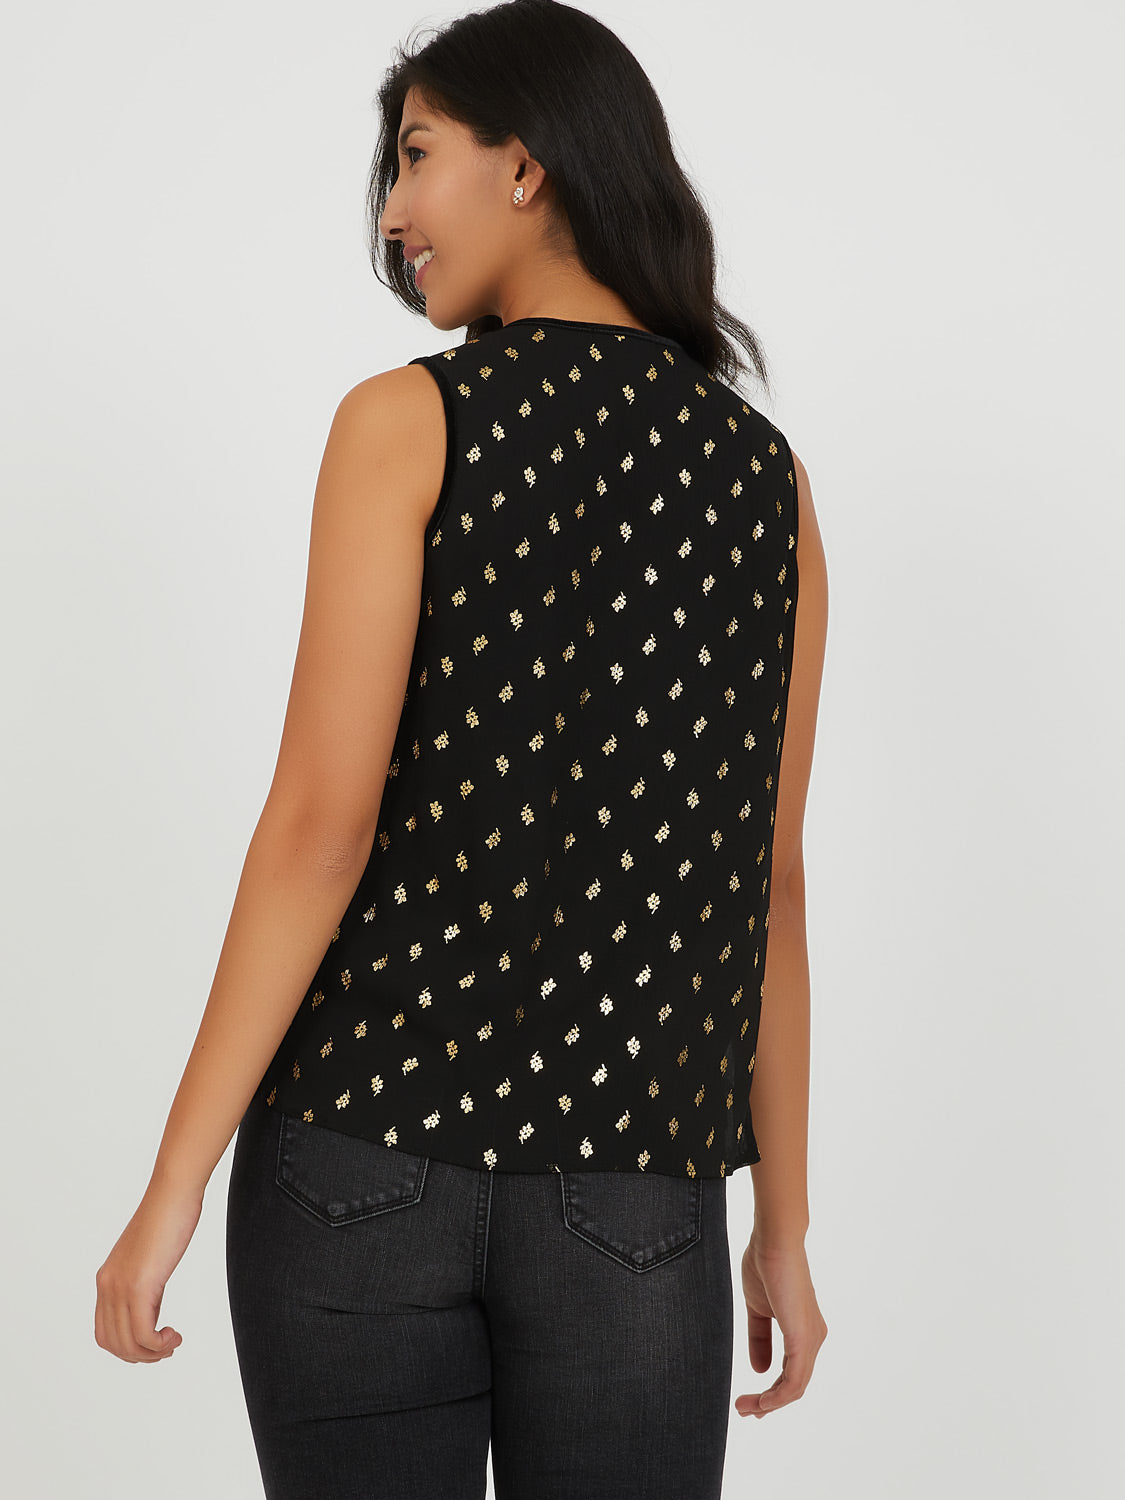 Sleeveless Foil Print Top